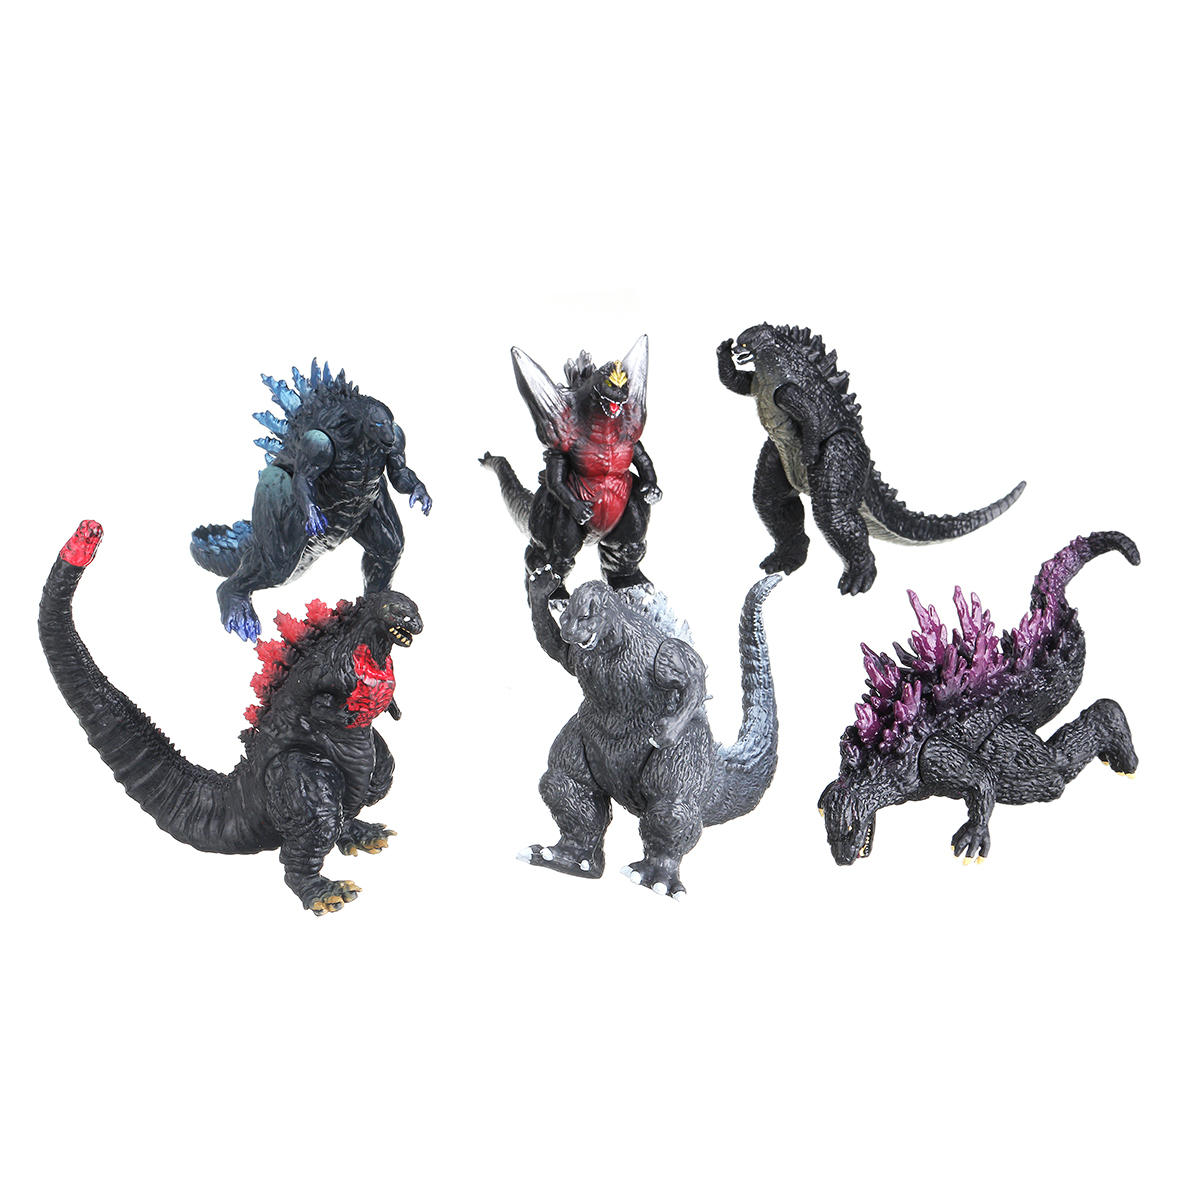 6pcs anime action figure toy dinosauro film monster doll bambini giocattoli di plastica regalo - 12